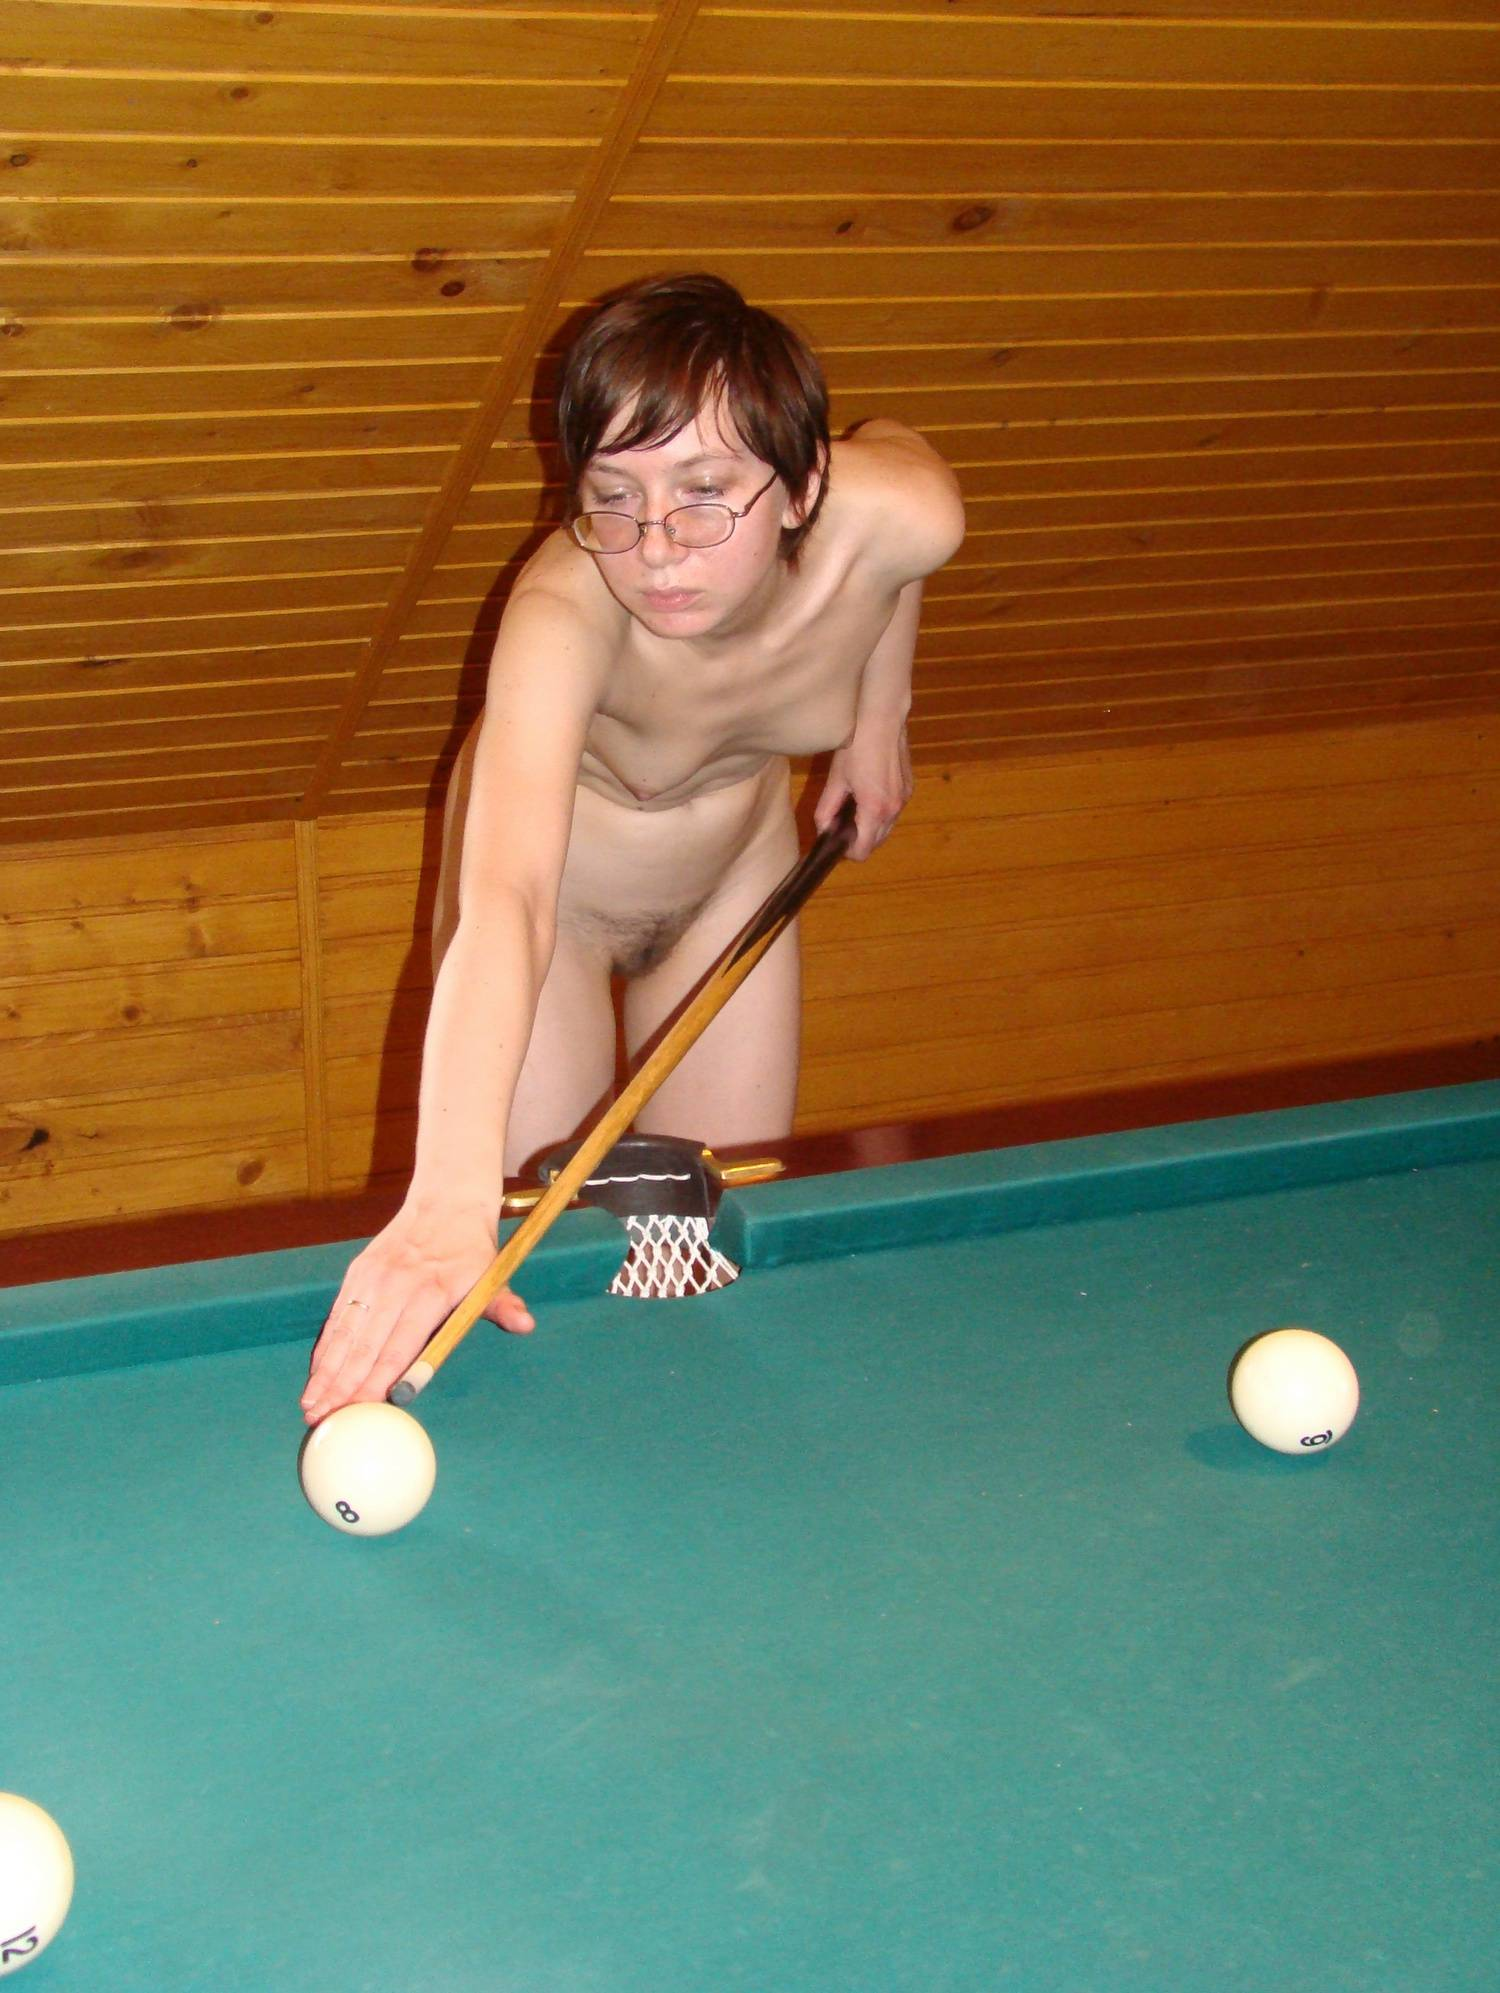 Naturist Girls Pool Gaming - 1